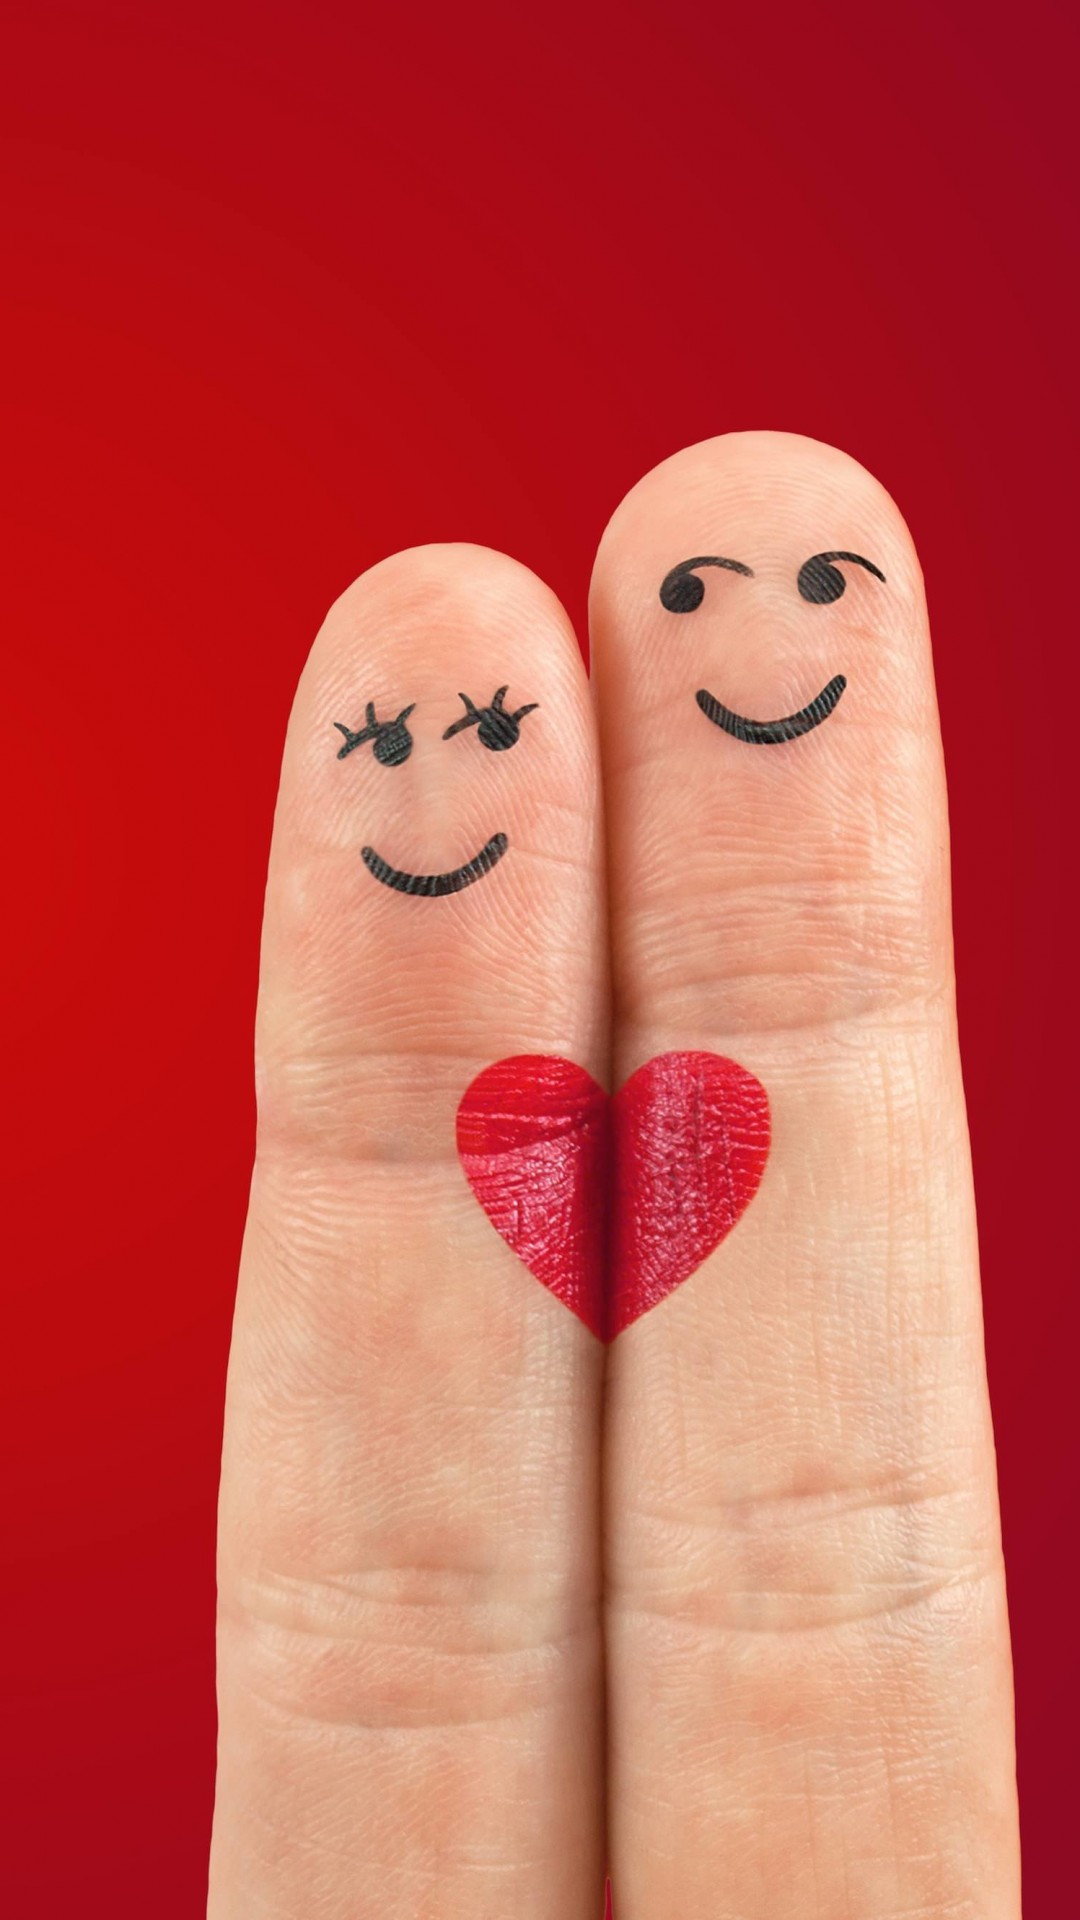 Fingers in Love Wallpaper for LG G2